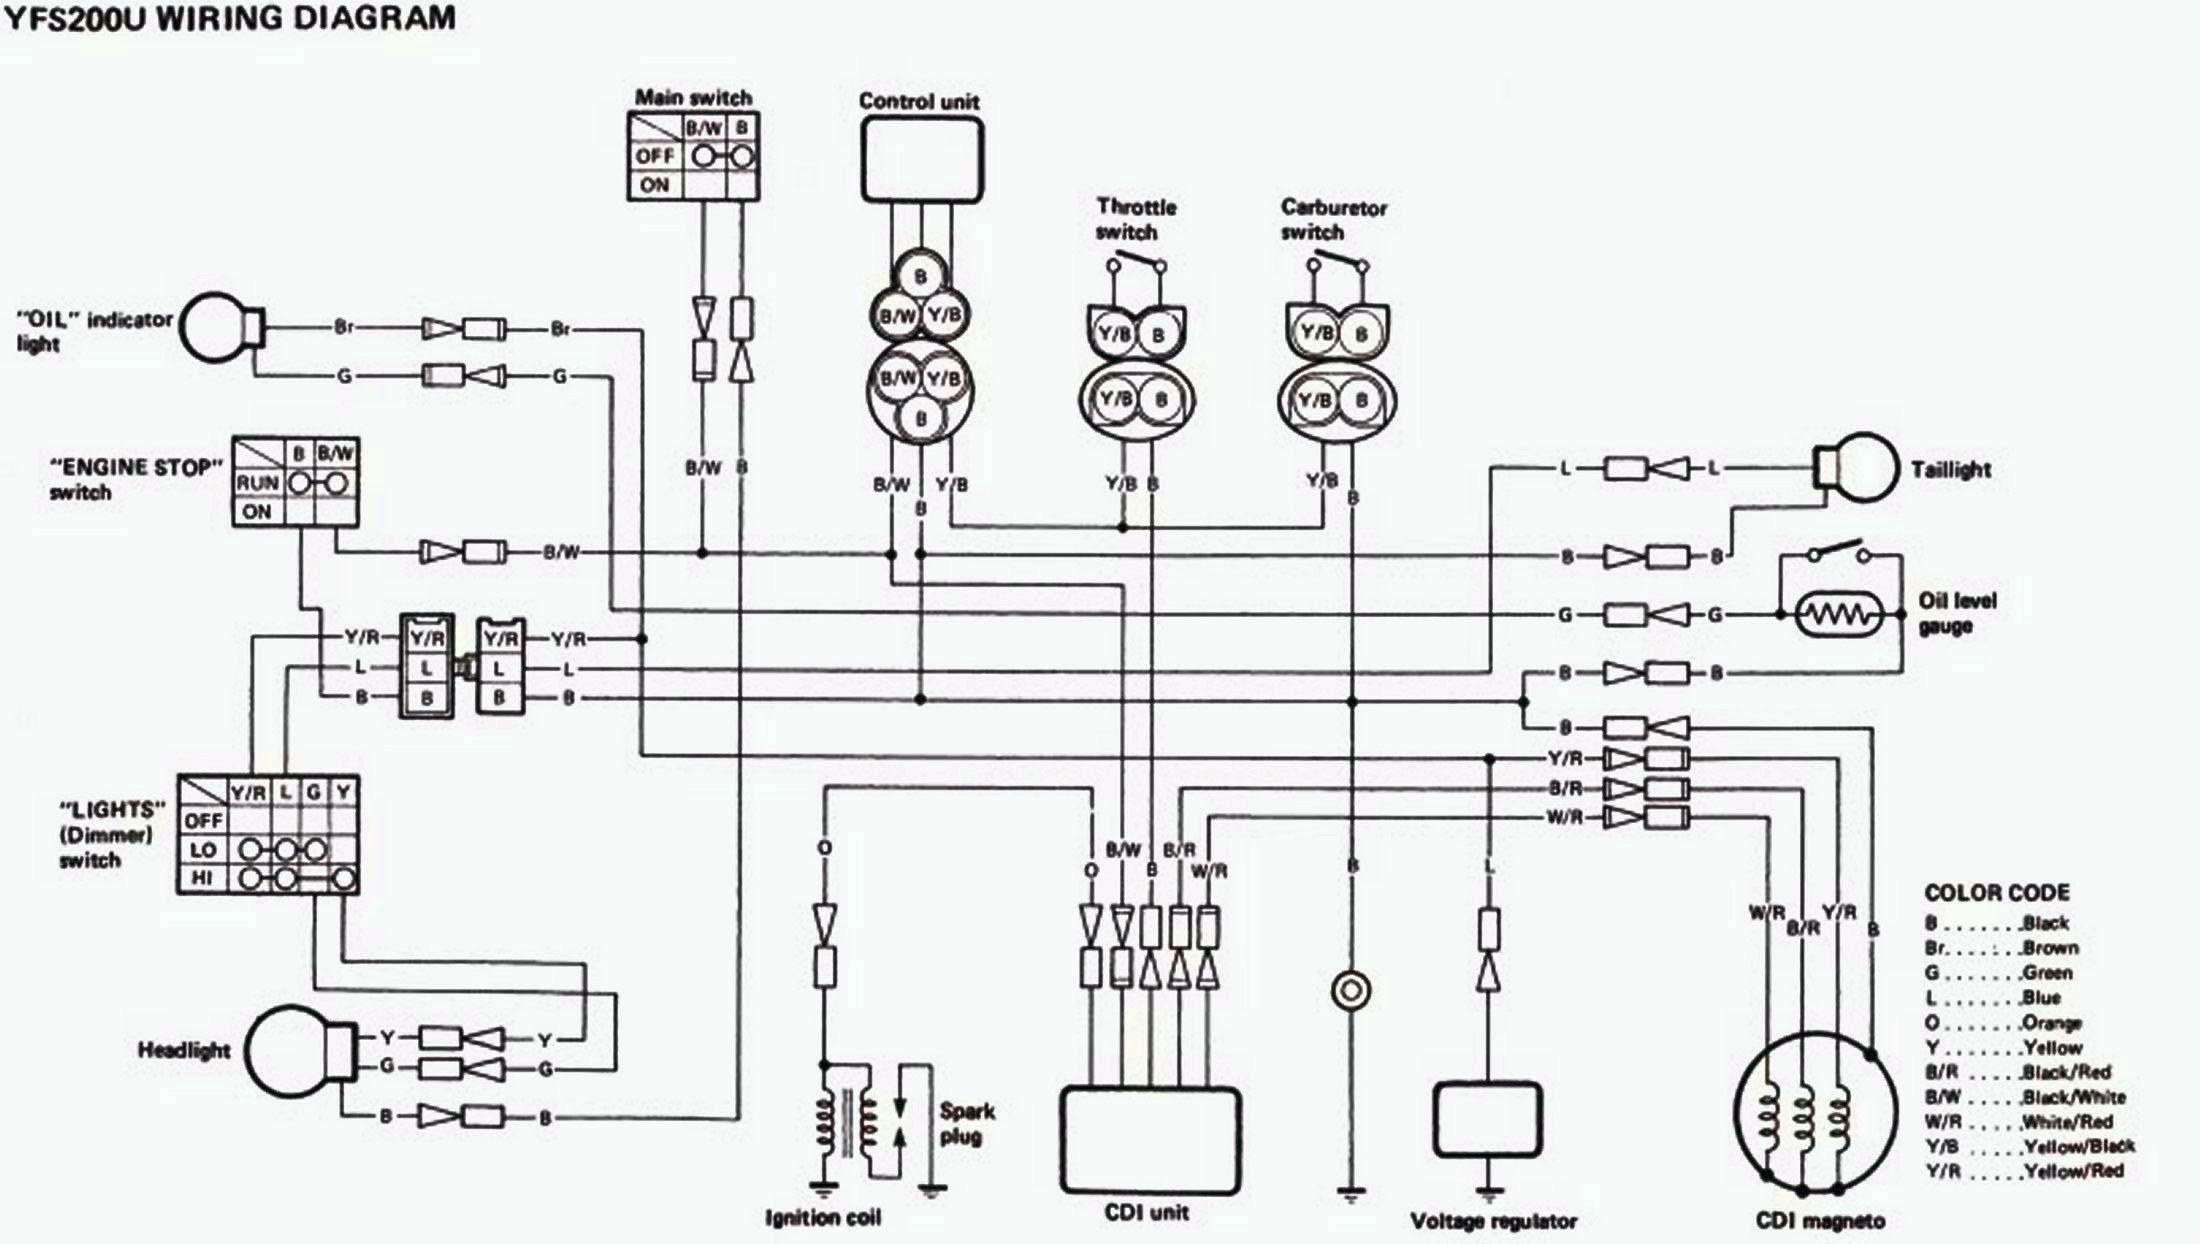 stock wiring diagrams blasterforum com rh blasterforum com